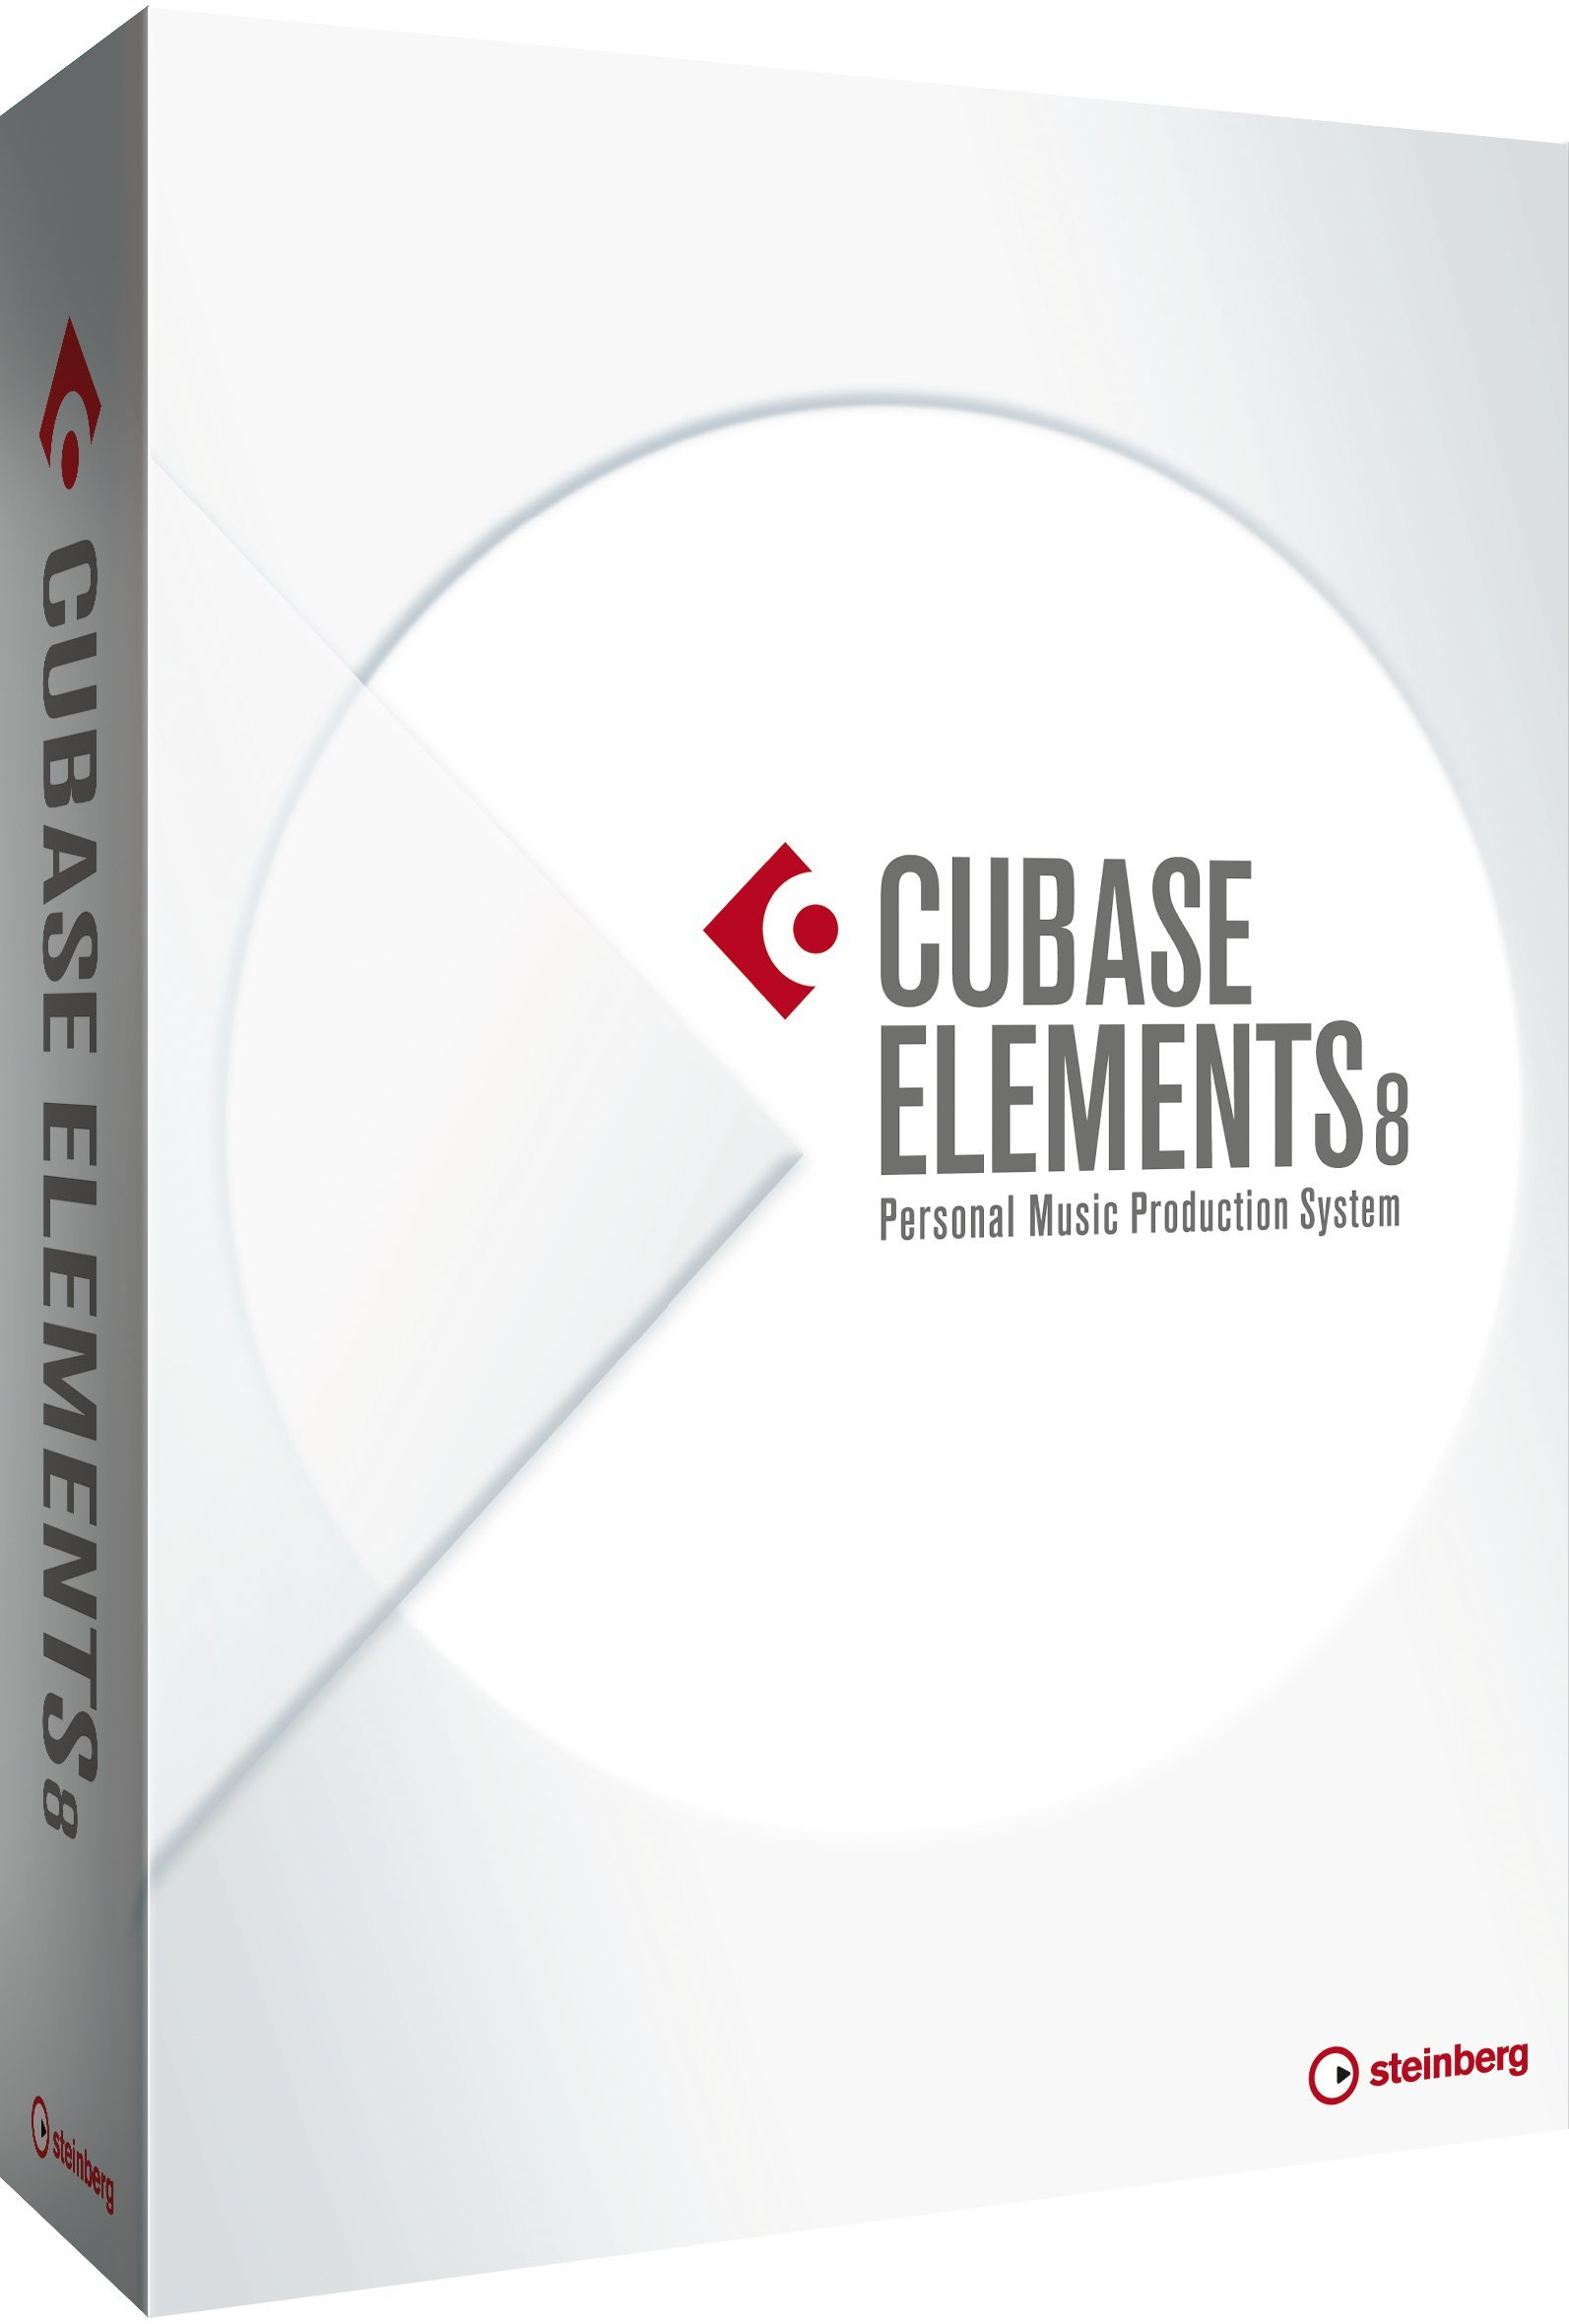 Steinberg Cubase Elements 8 Recording Software by Steinberg